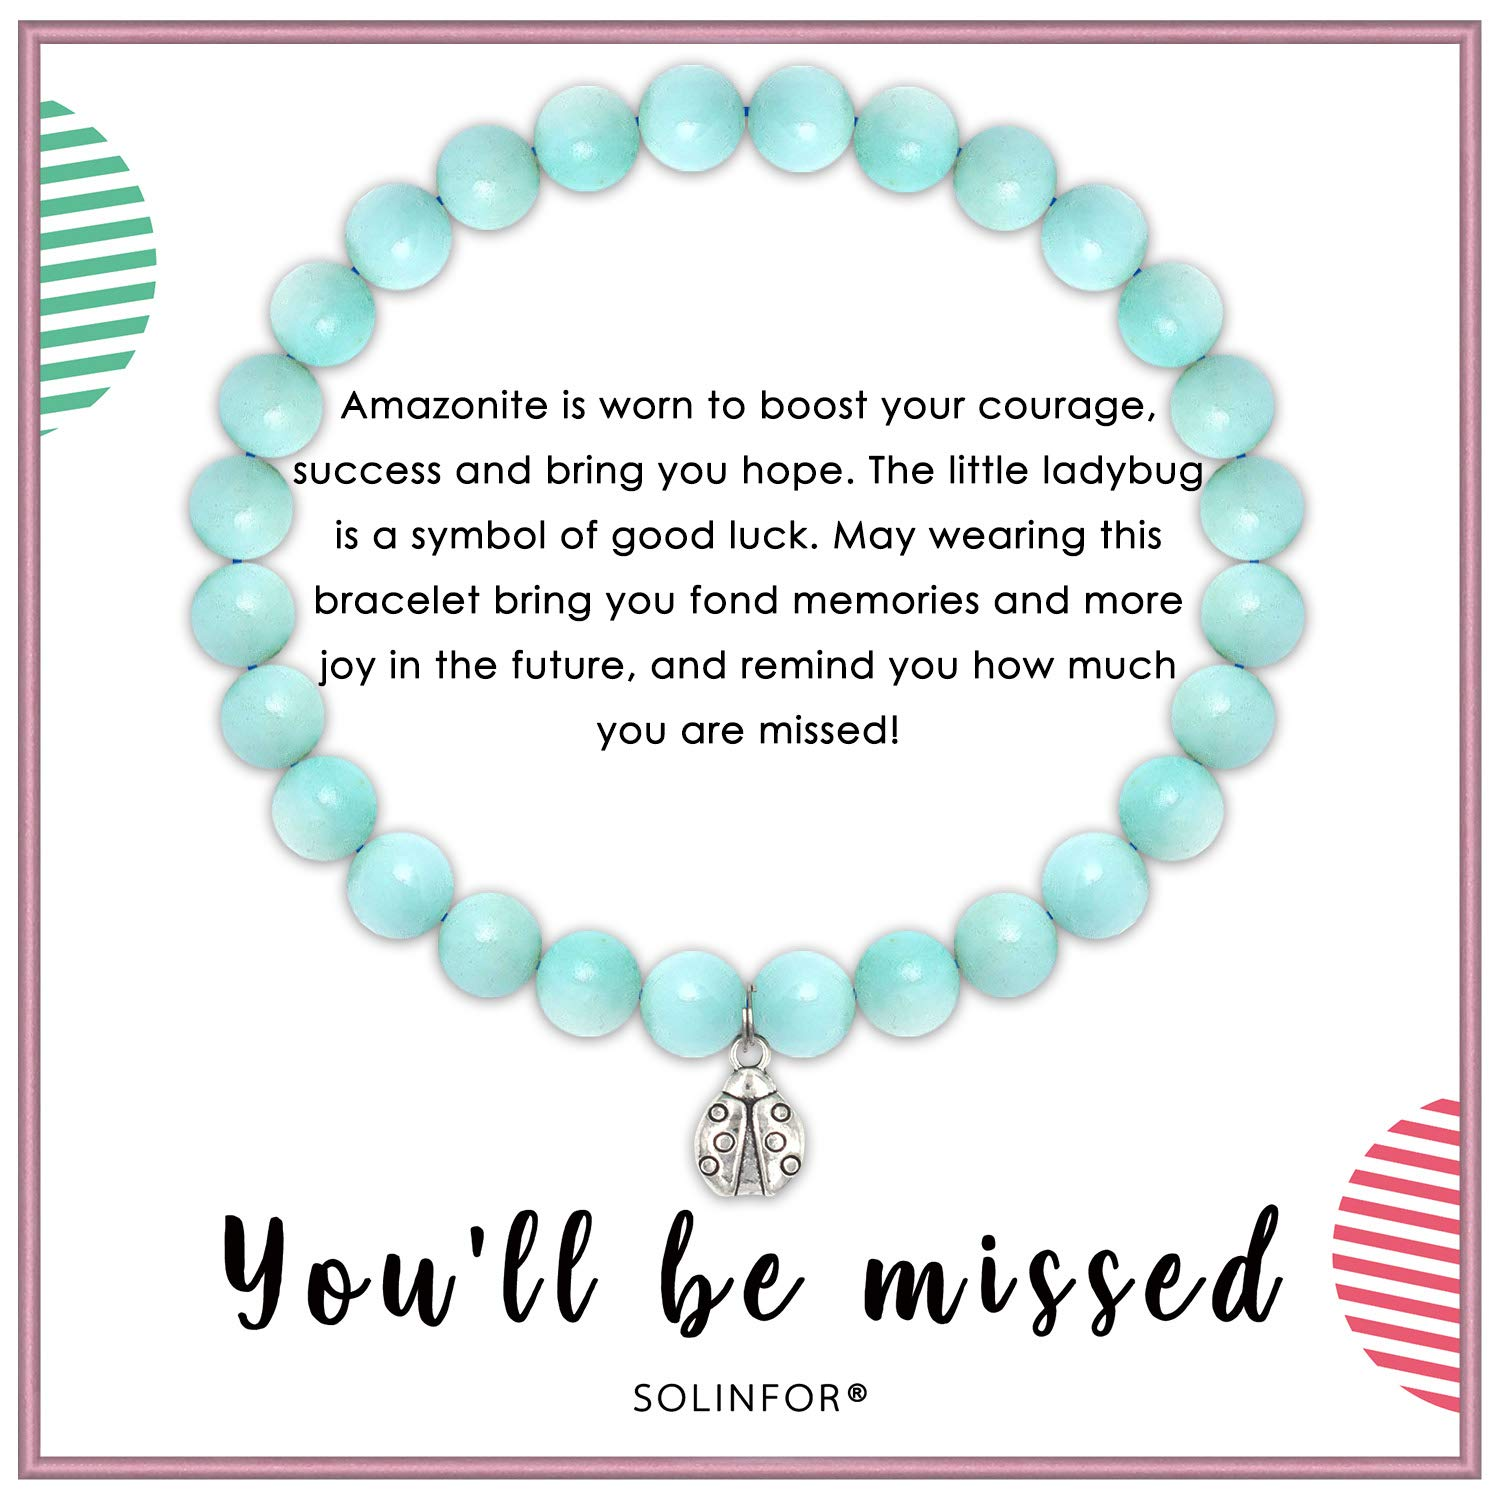 SOLINFOR Coworker Leaving Gifts for Women - Amazonite Beads Farewell Bracelet - Retirement Moving Away Goodbye New Job Good Luck Jewelry Gift Idea for Her Friends Boss by SOLINFOR